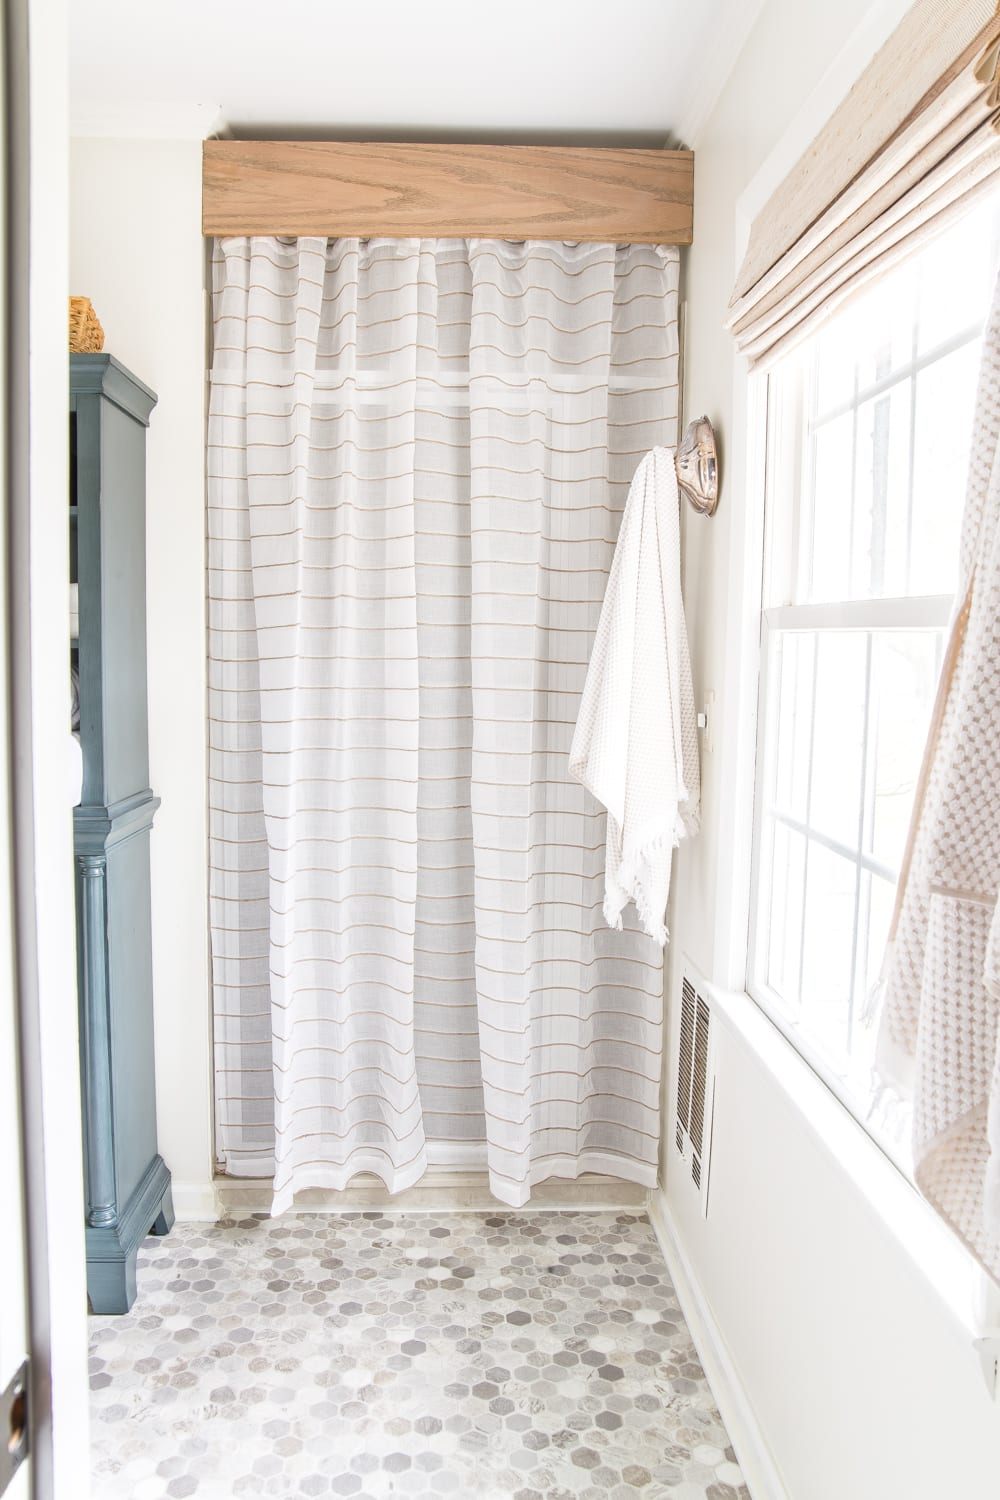 Budget Master Bathroom Refresh Reveal | old shower door cover-up with a semi-sheer curtain and a DIY wooden cornice